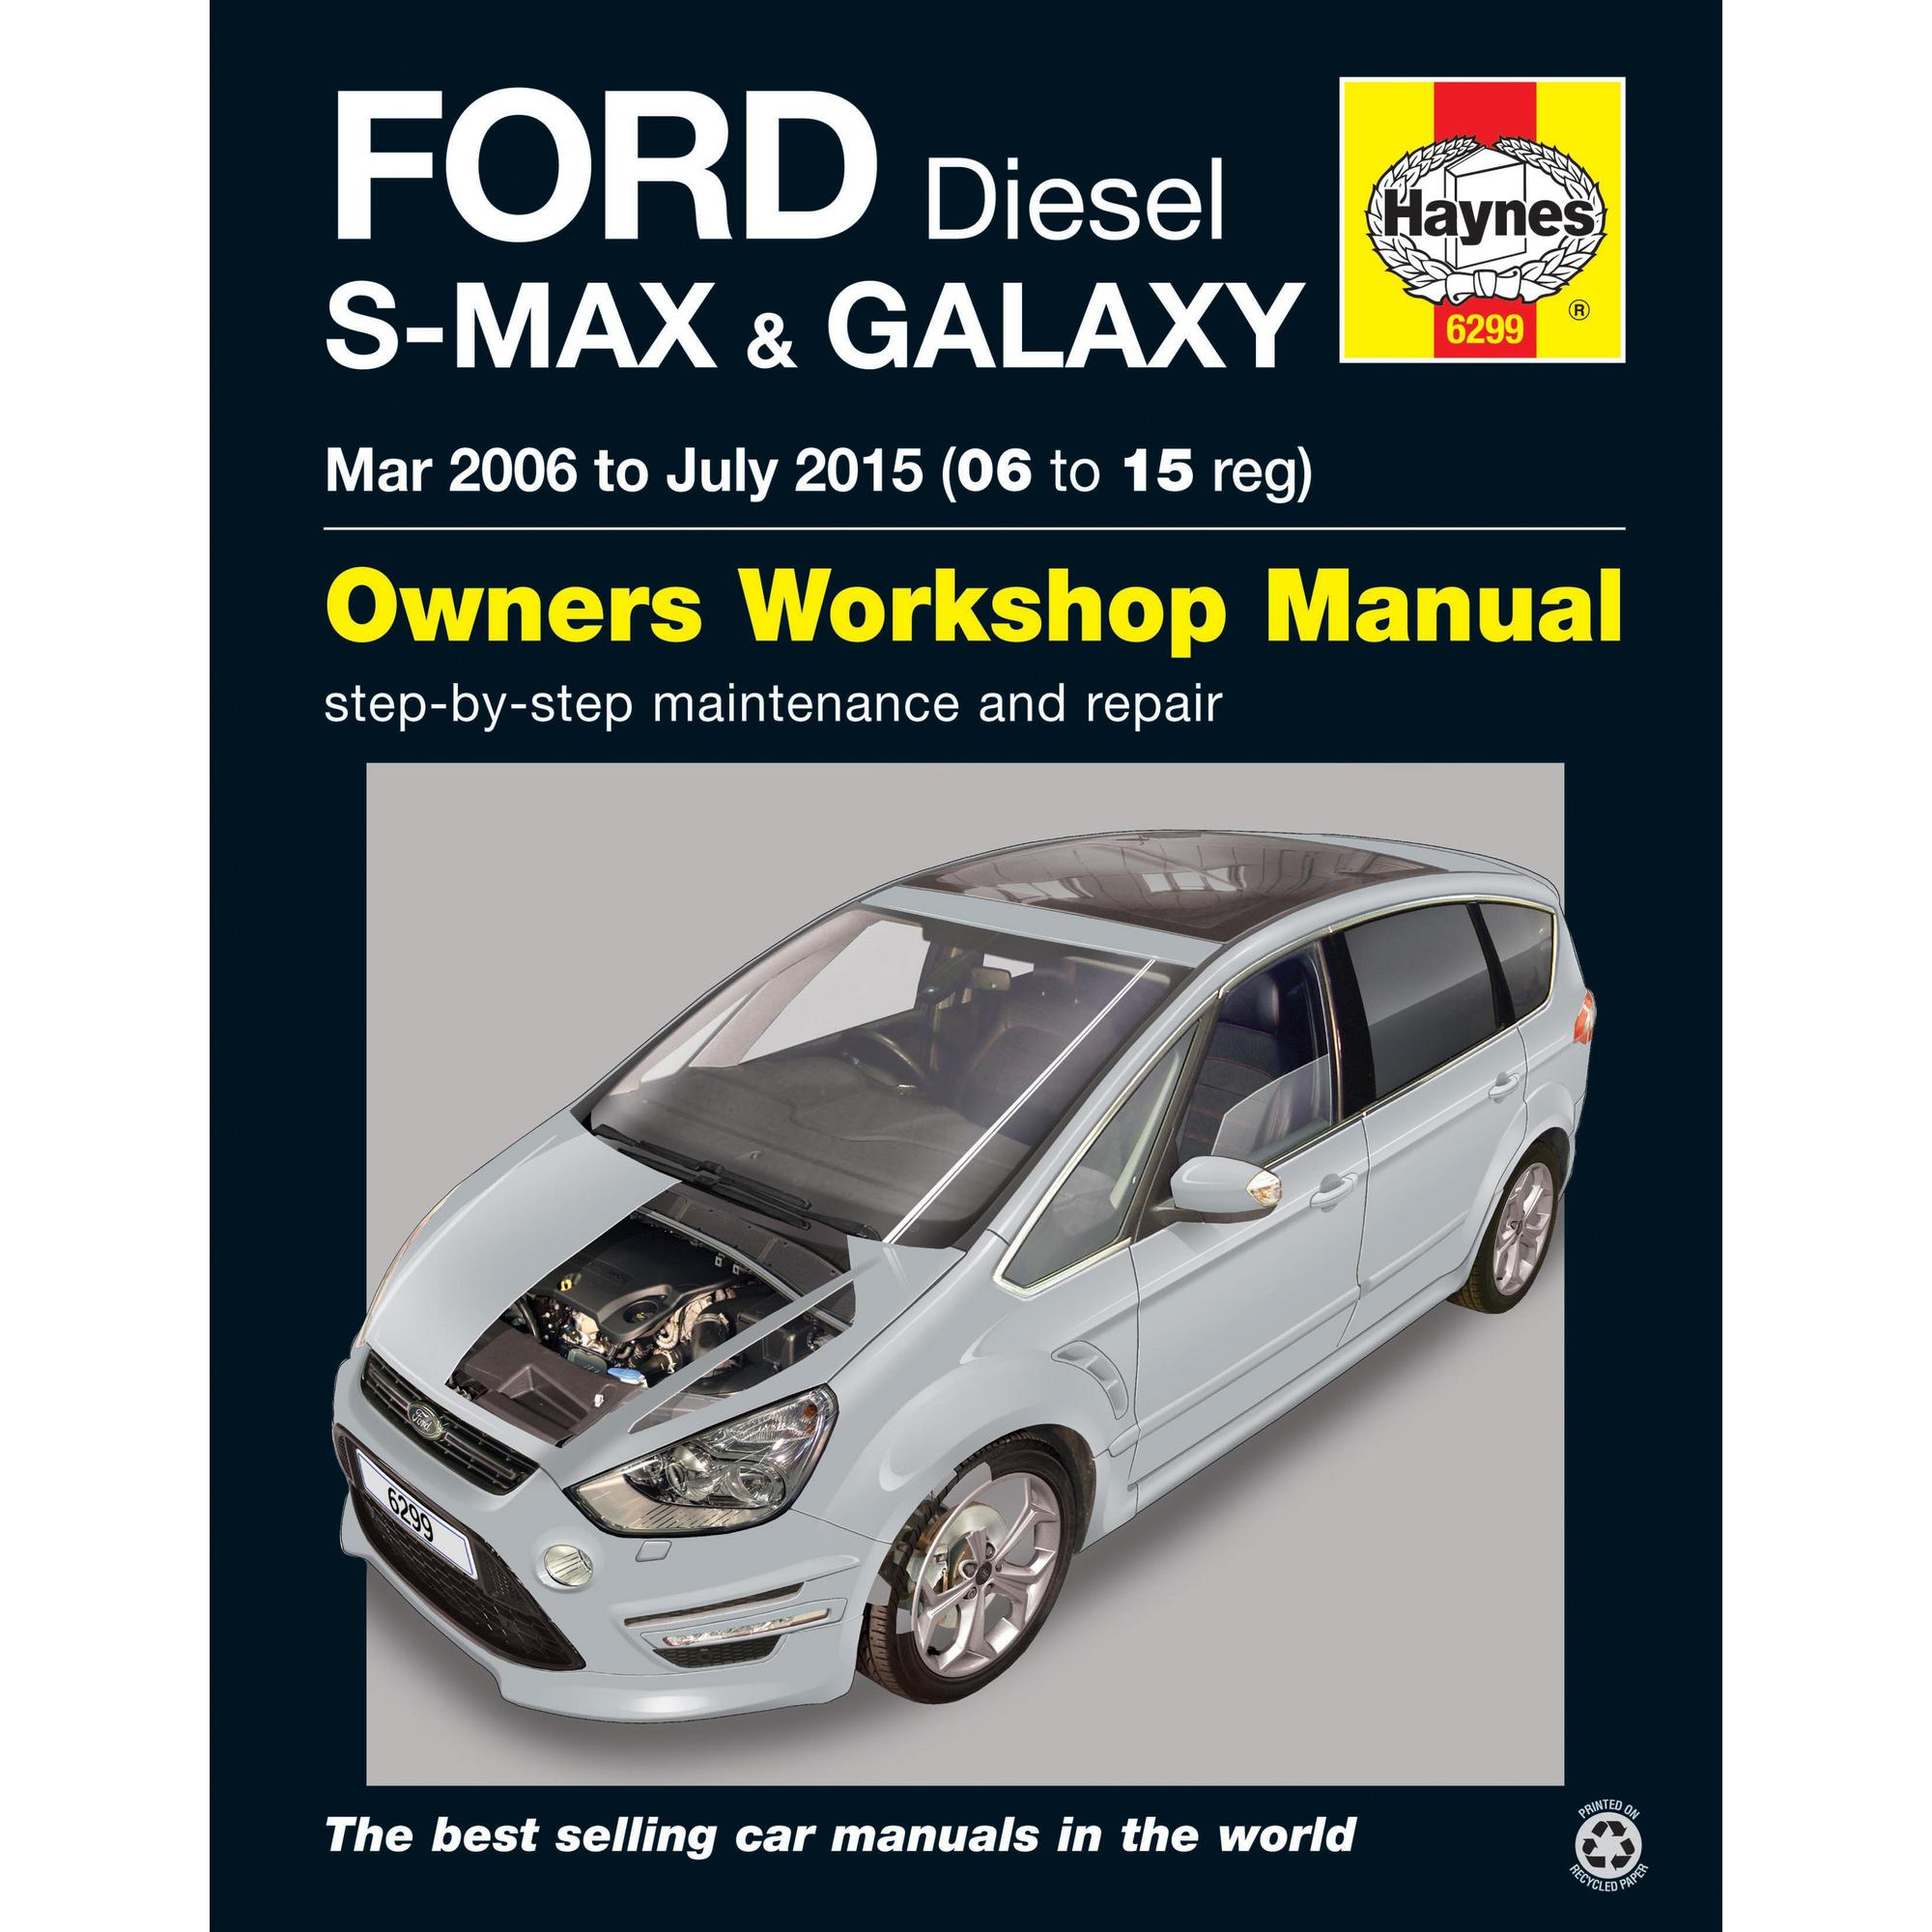 haynes owners workshop repair manual ford s max galaxy 2006 2015 turbo diesel ebay ford galaxy workshop manual download ford galaxy workshop manual free download